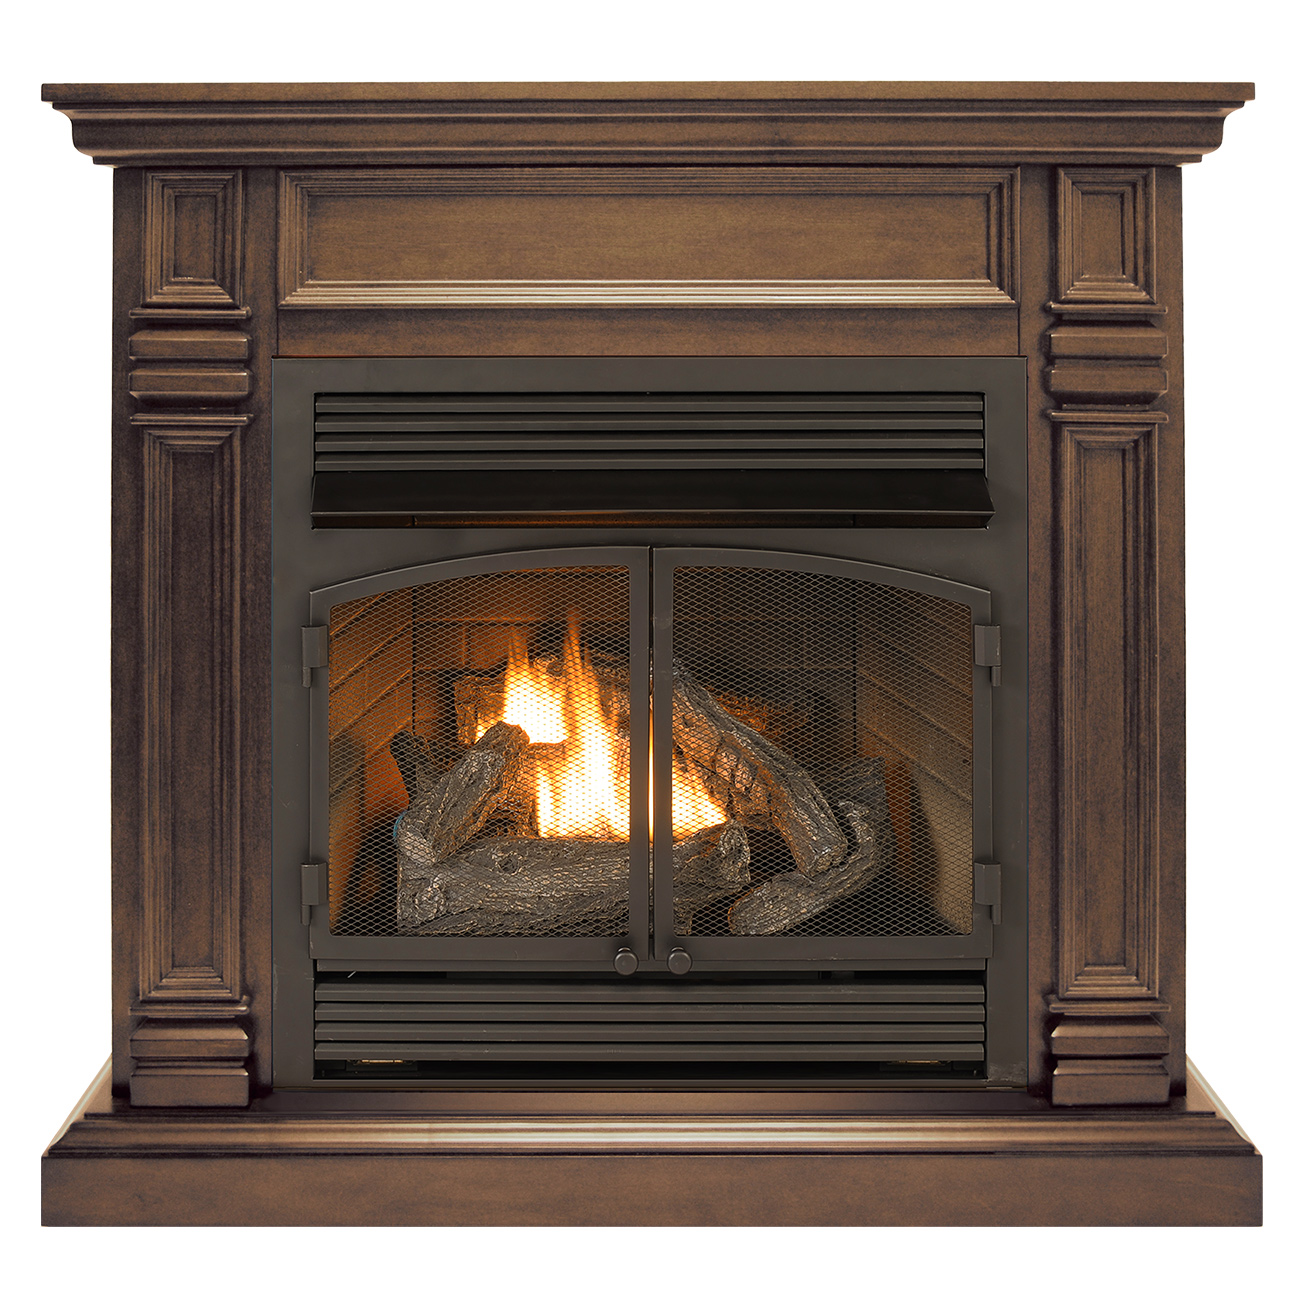 Ventless Fireplace: Ventless Fireplace System Dual Fuel Technology Chocolate